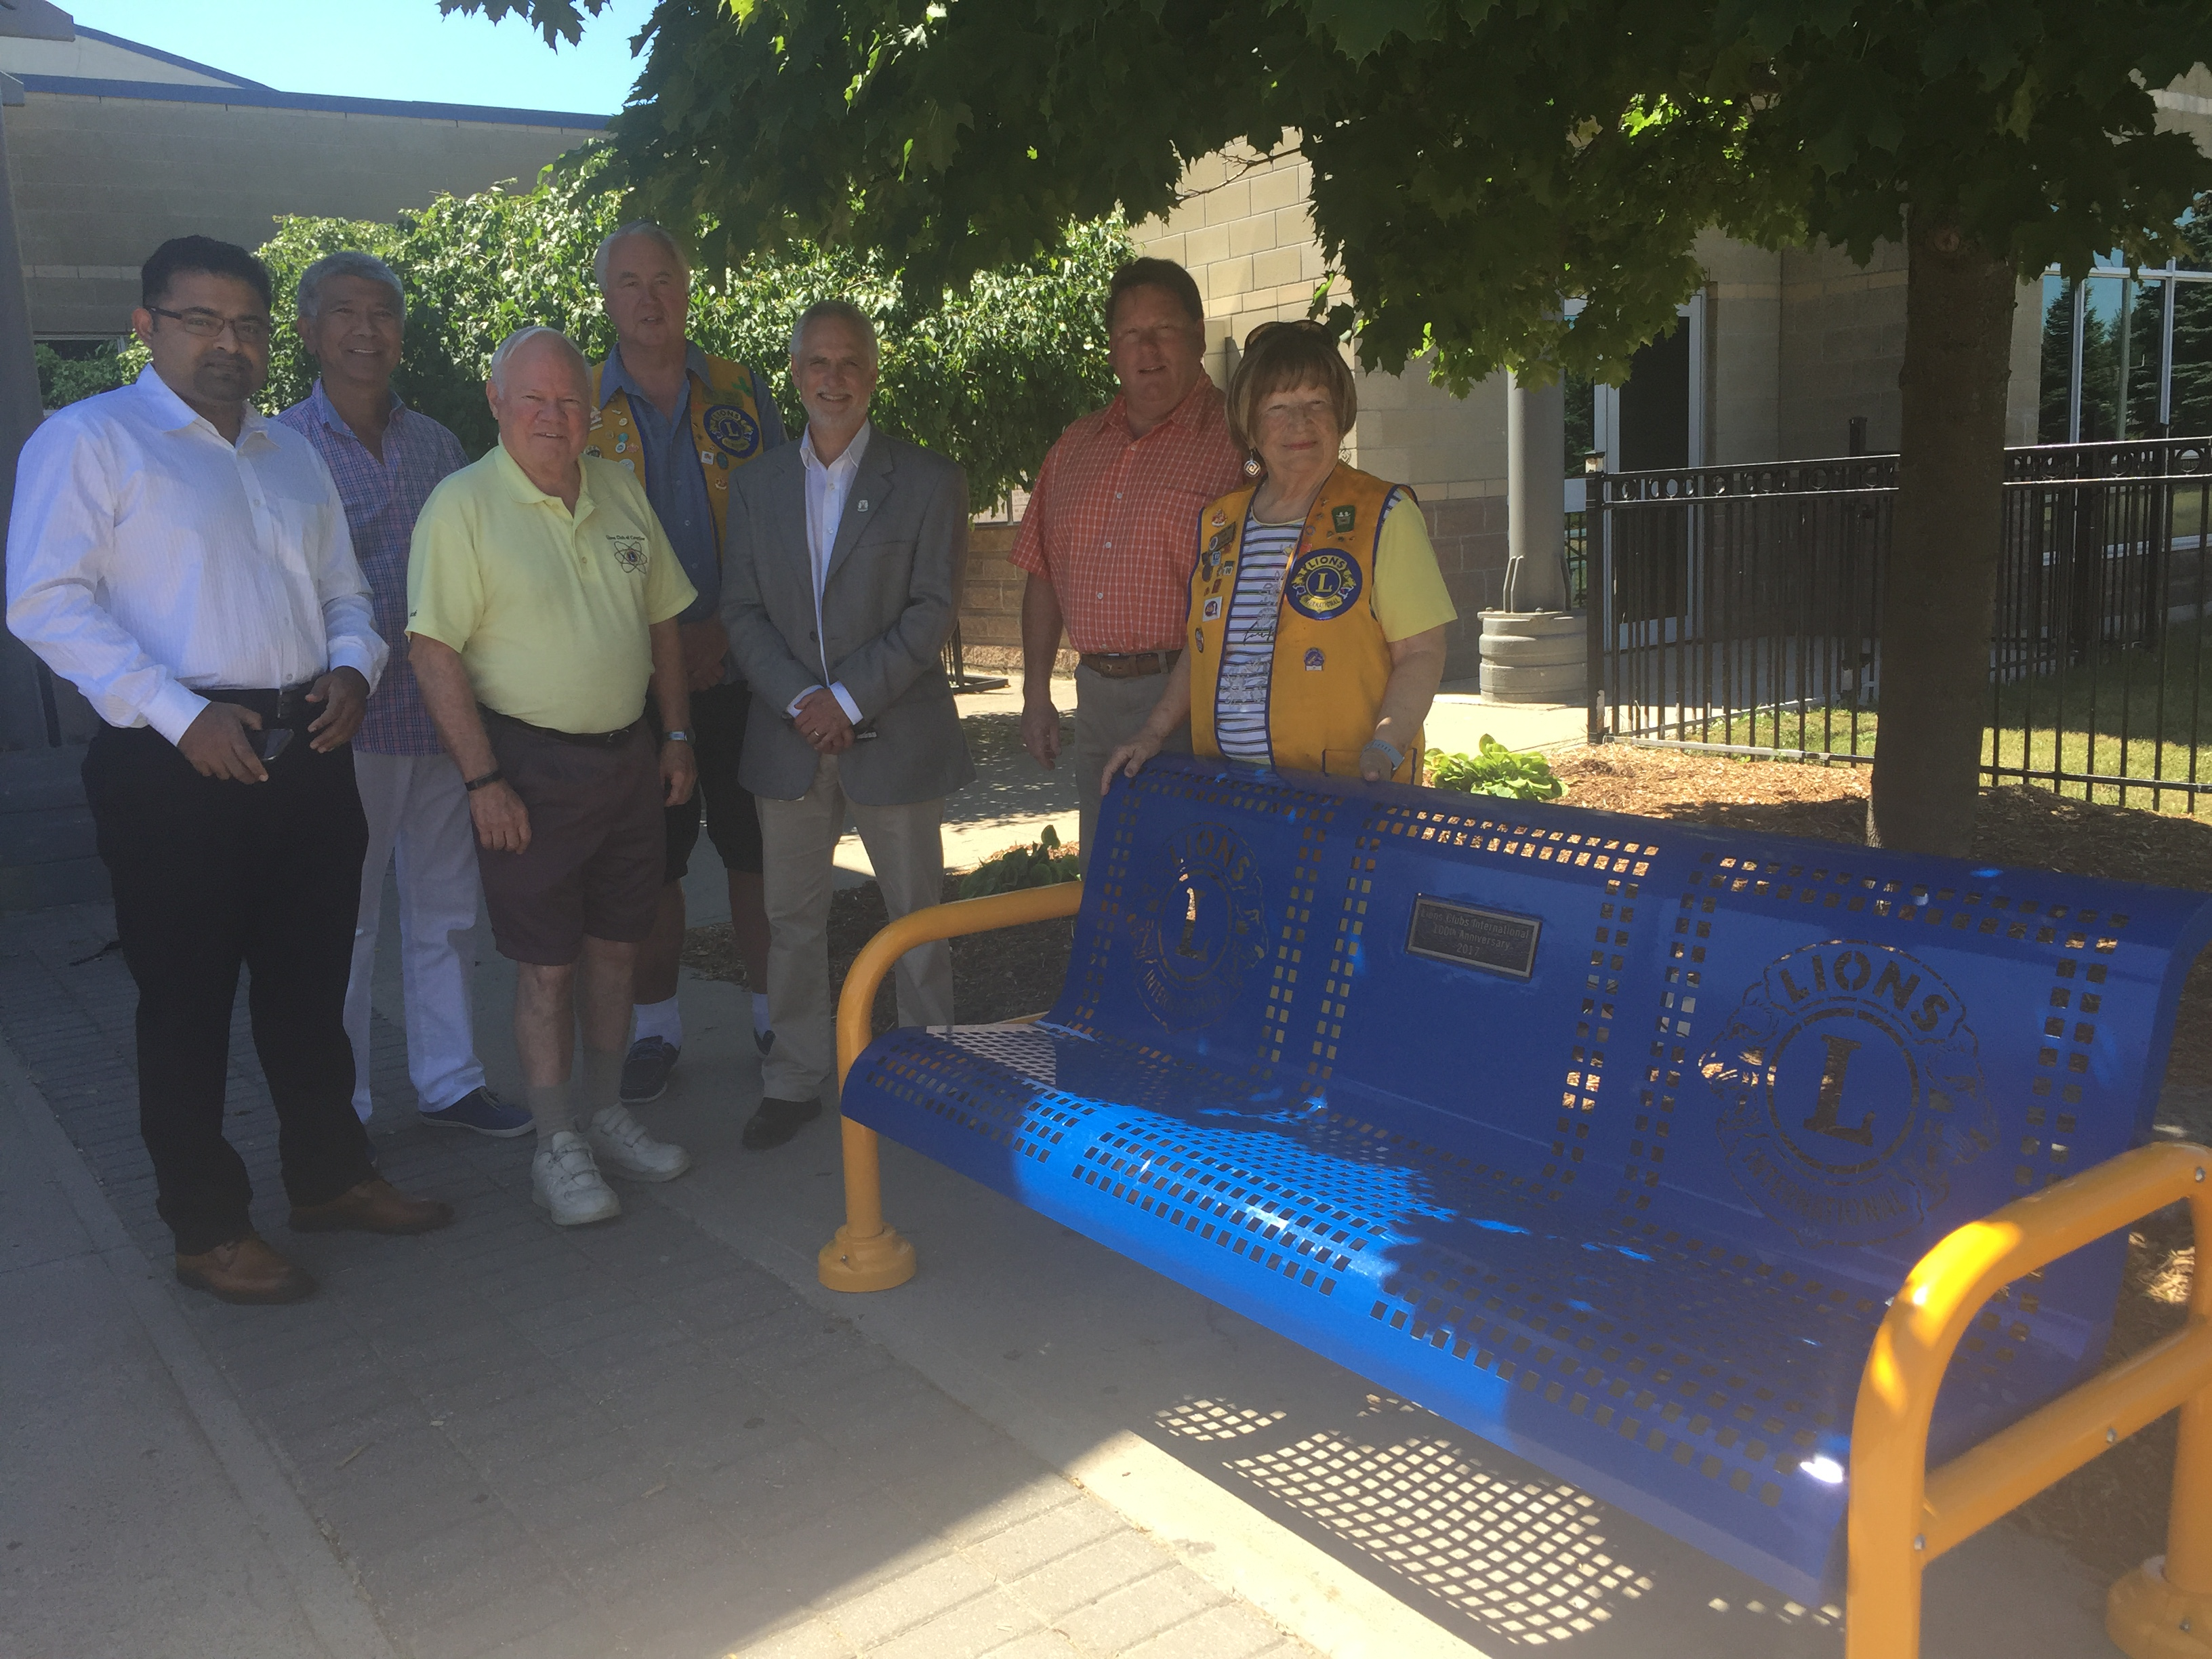 Courtice Lions Club benches